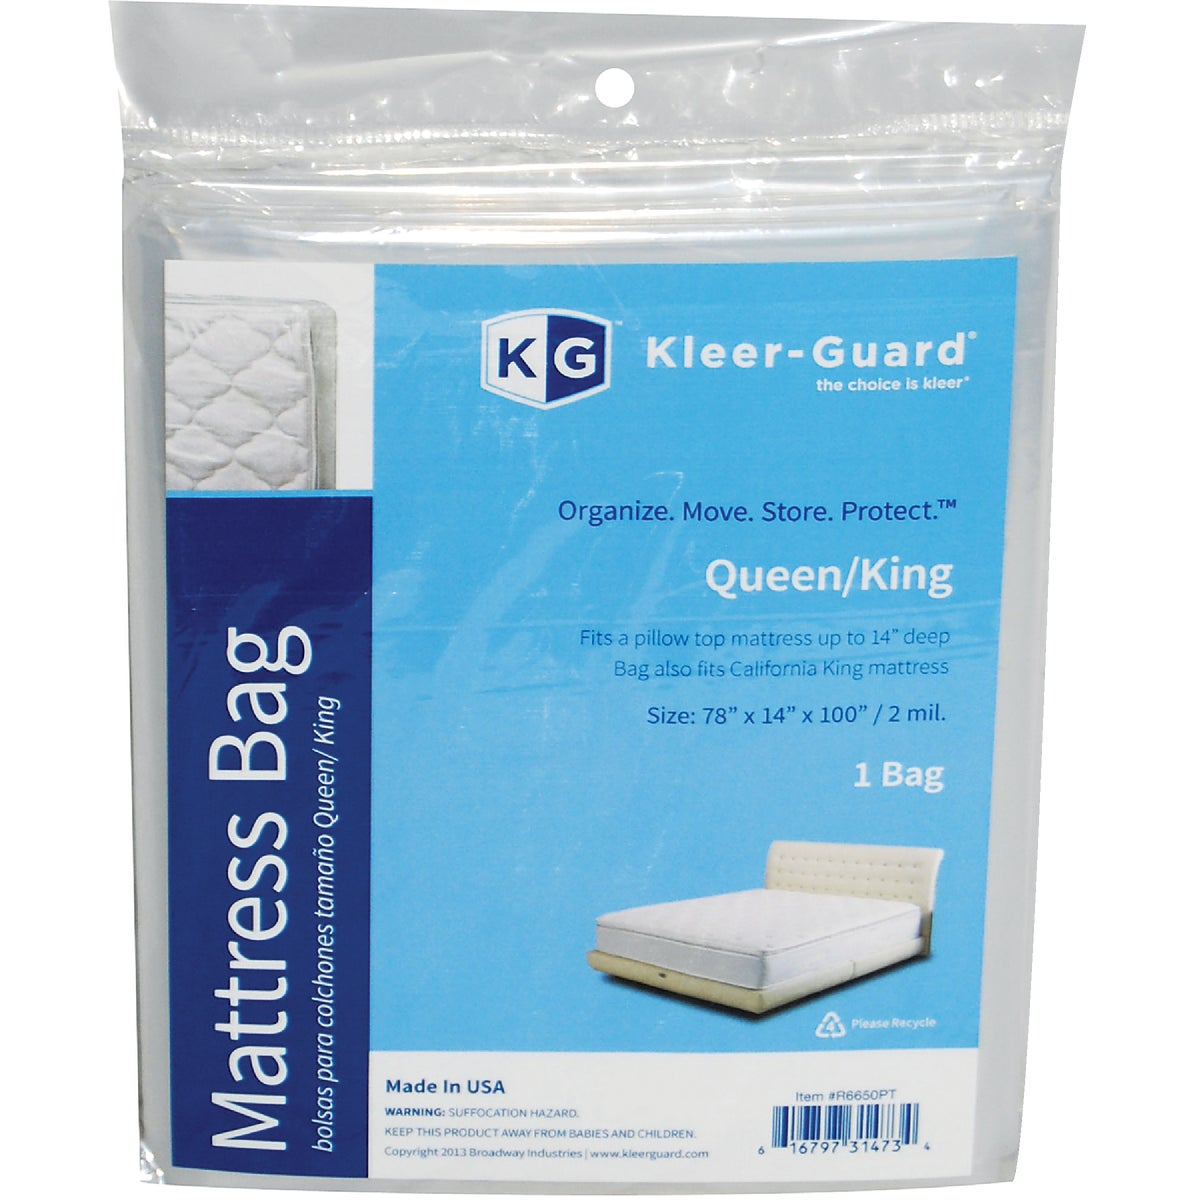 KING/QUEEN MATTRESS BAG - R6650PT by Broadway Industries